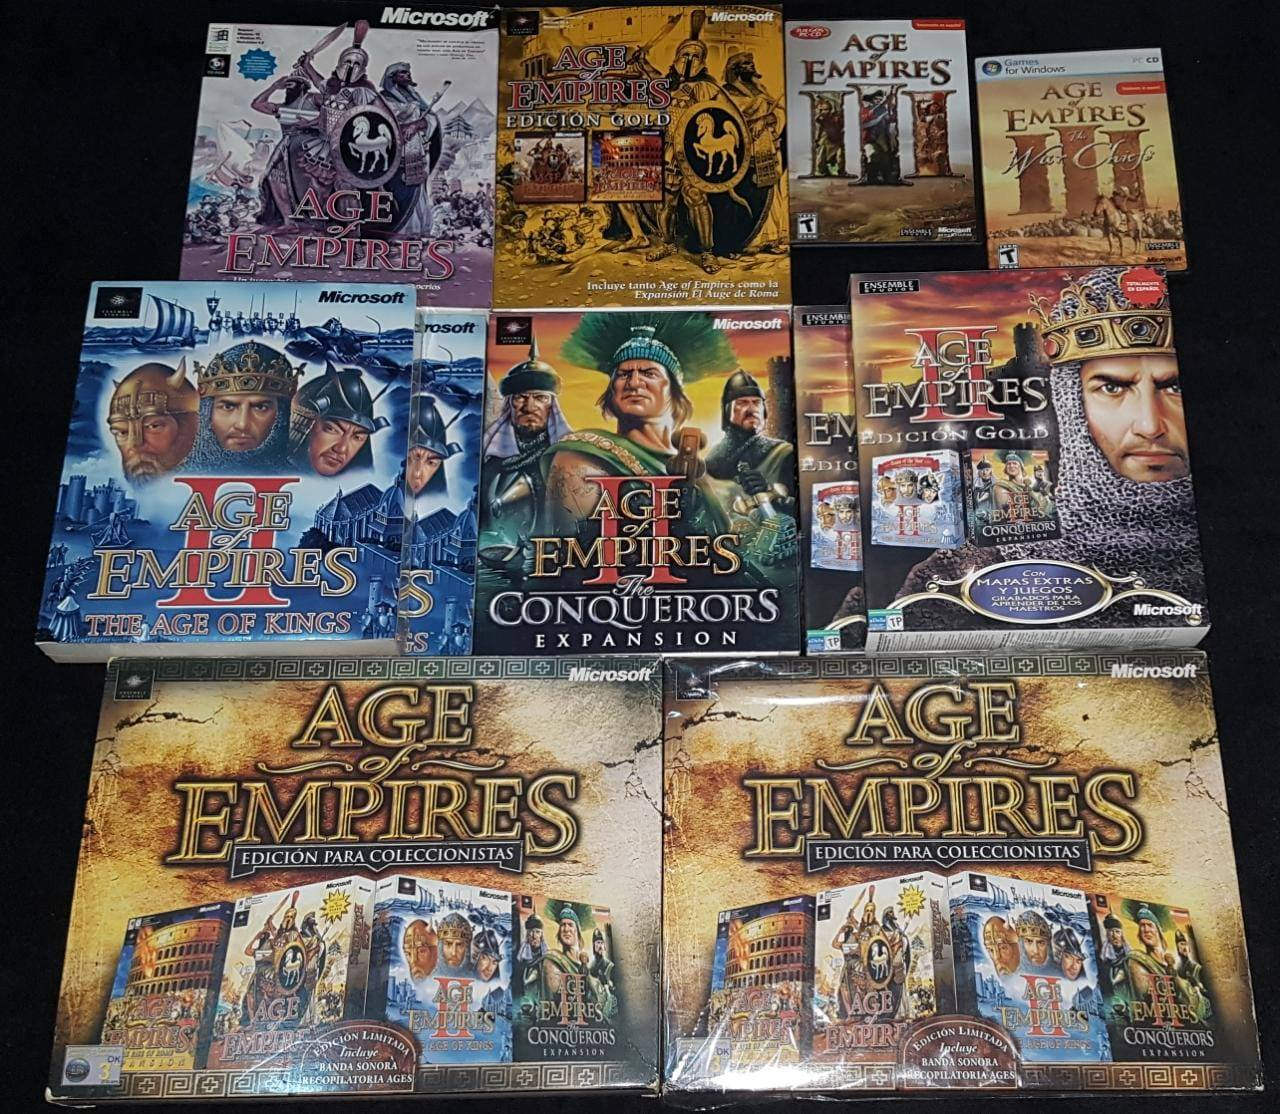 Game Code Giveaway - Age of Empires - Age of Empires Forum